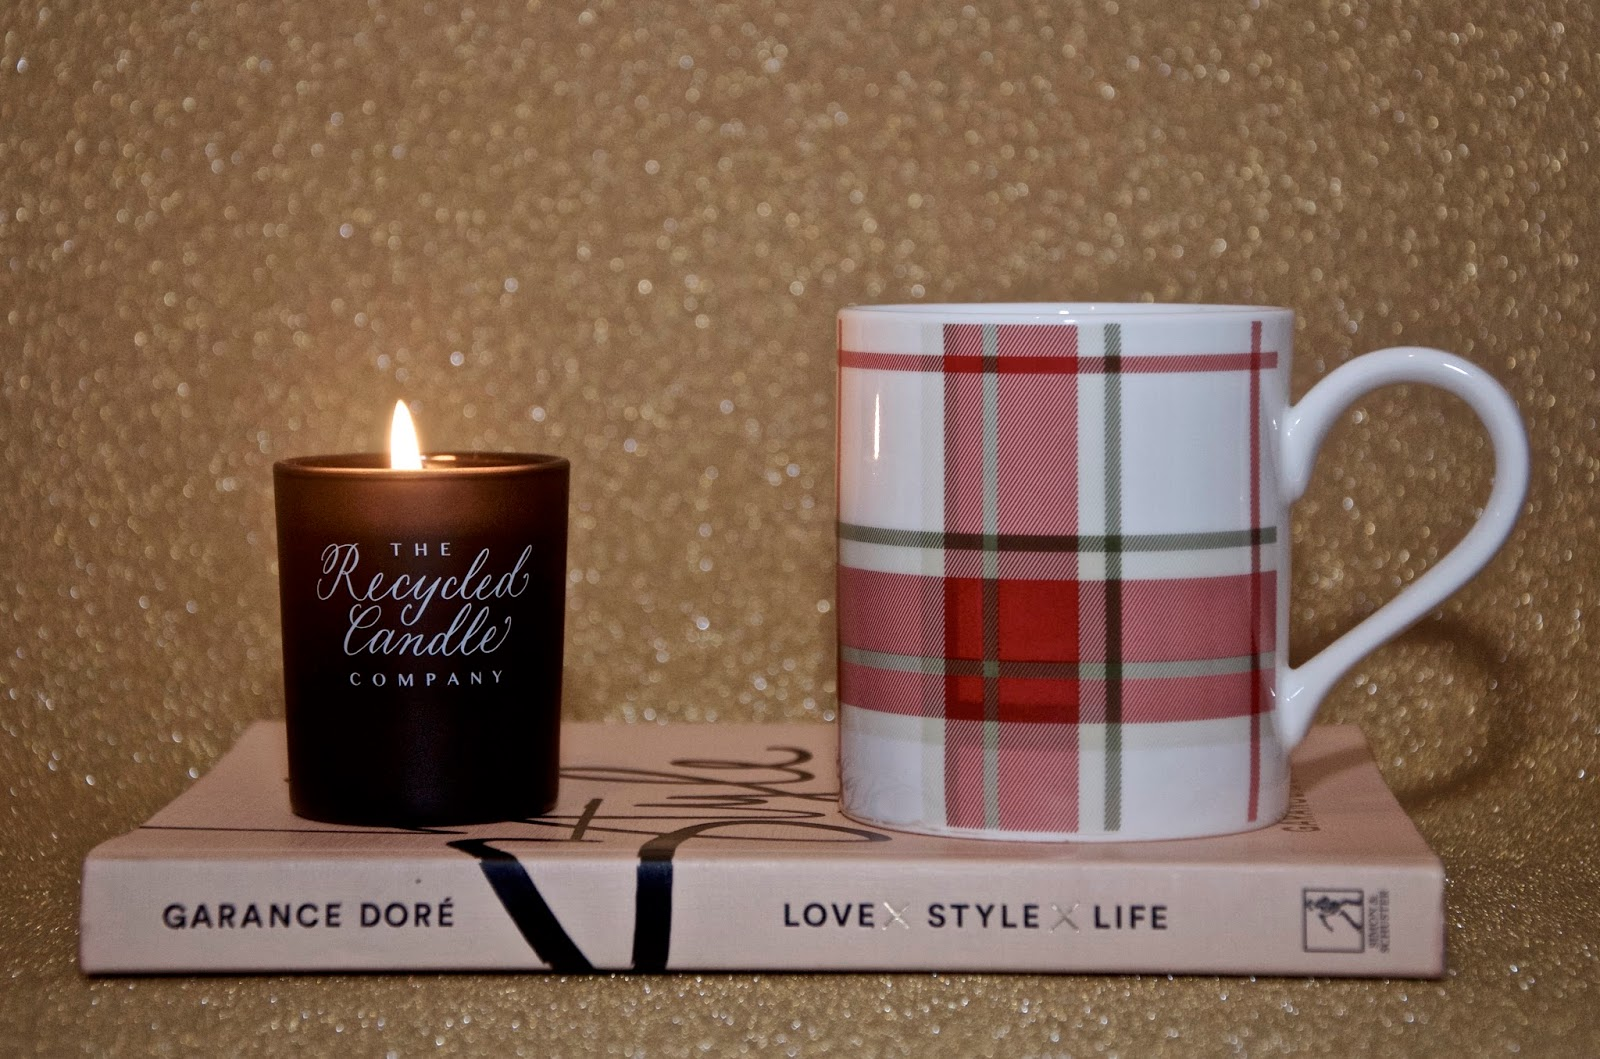 Black votive candle, pink book and red & green plaid Christmas mug